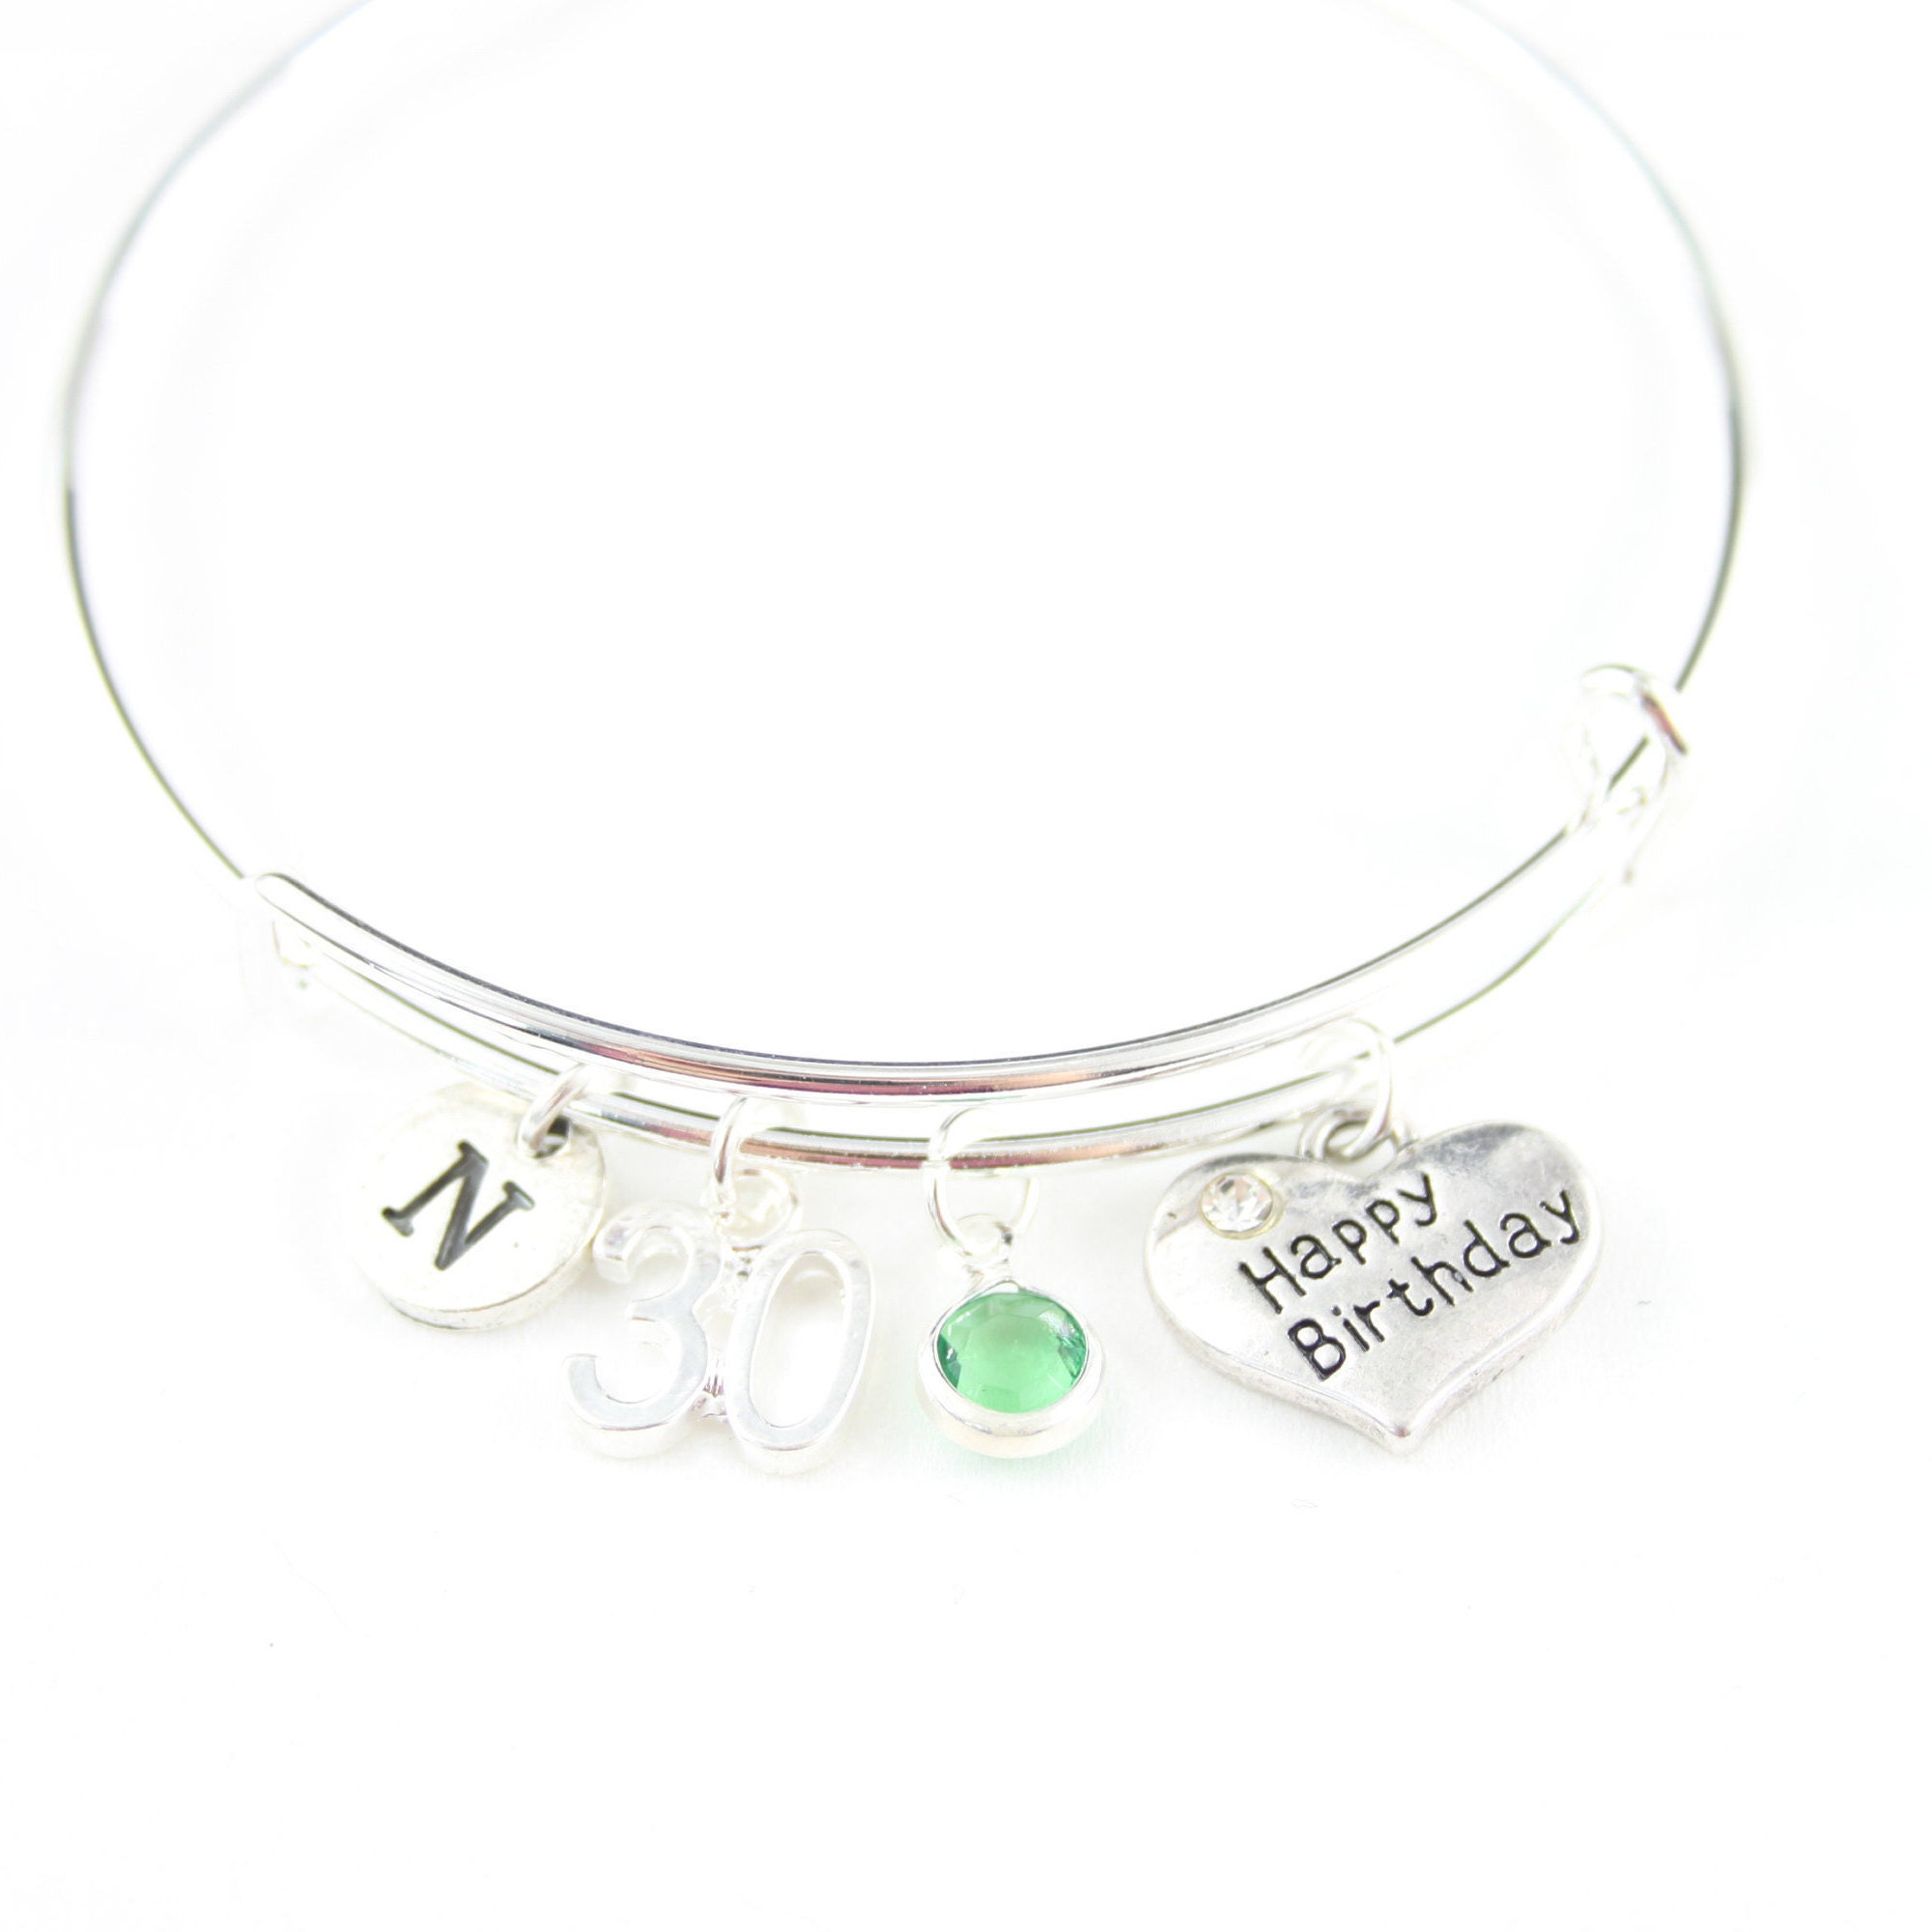 30th Birthday Gift For Woman Bracelet Friend Personalized Gifts Her Dirty 30